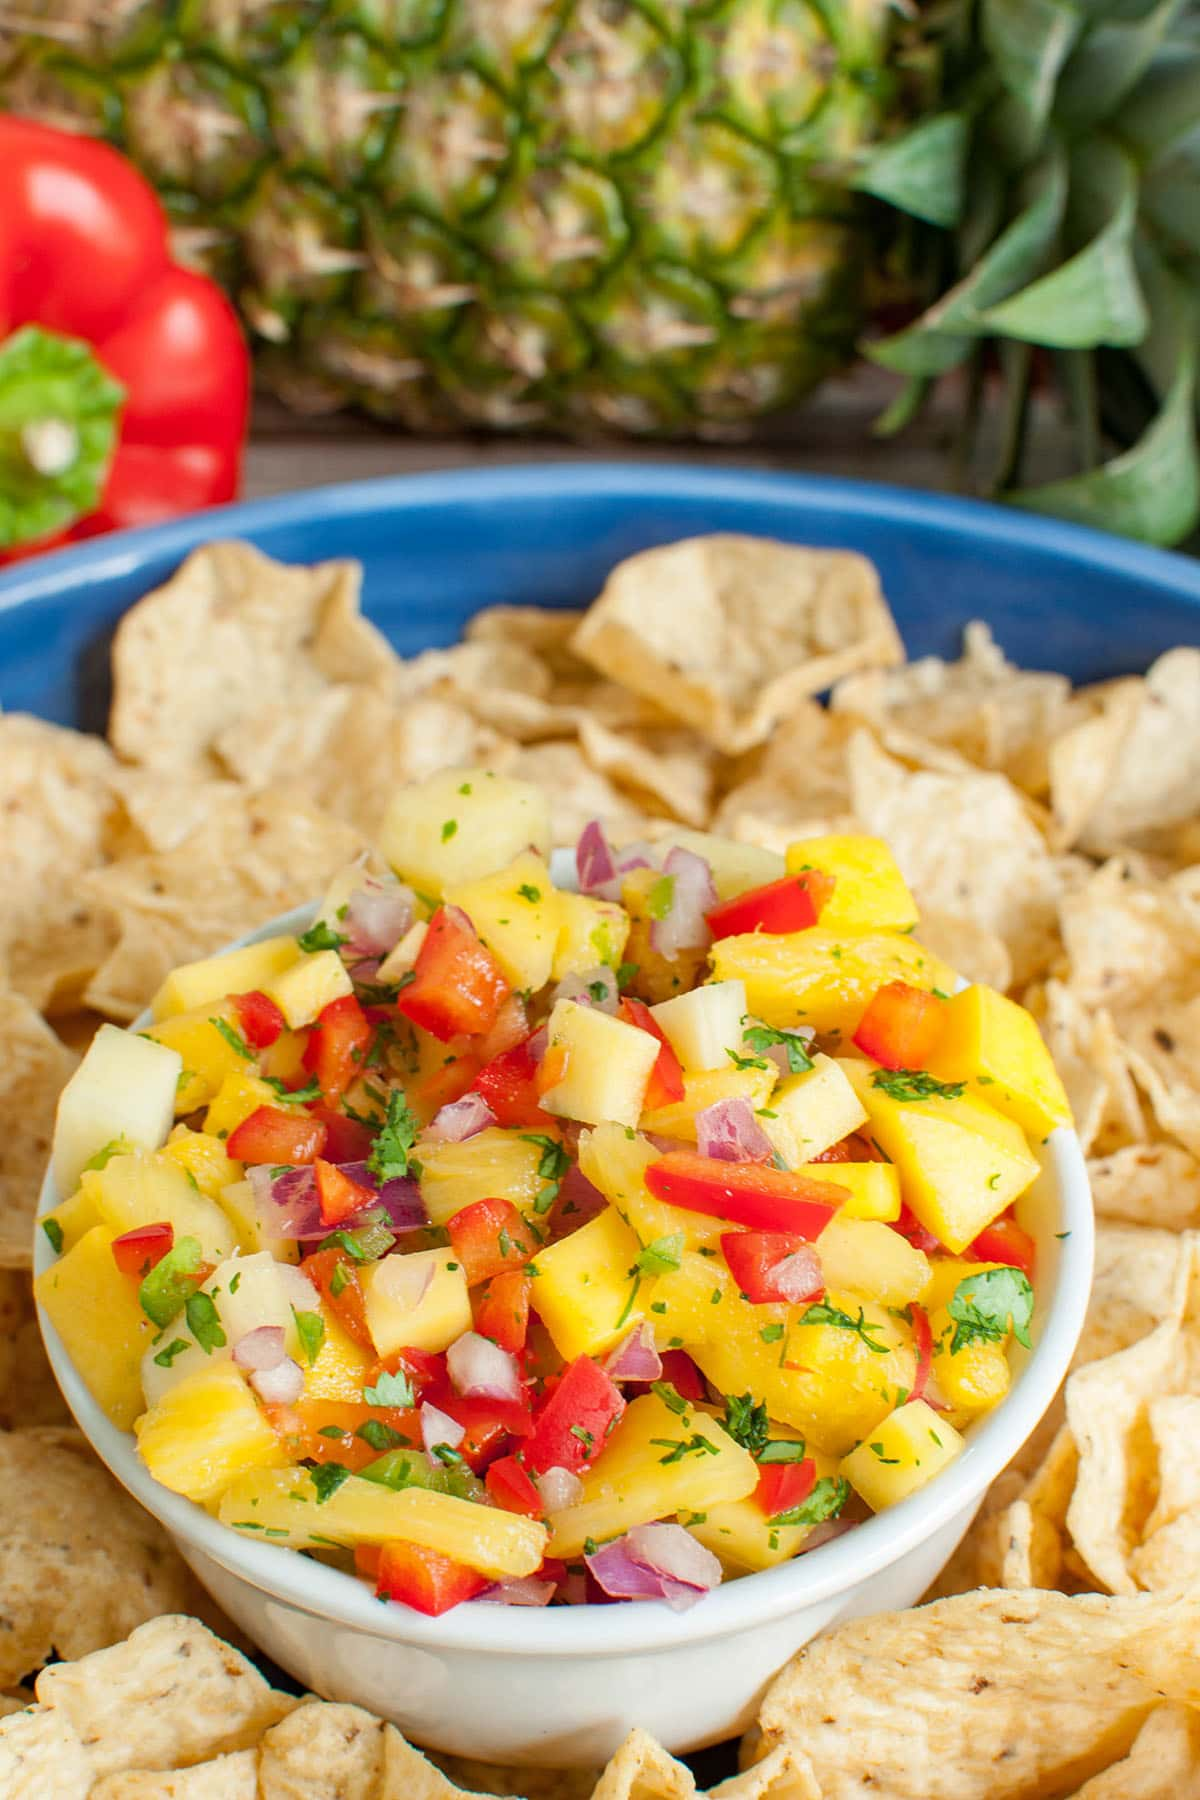 bowl of salsa with chips on a blue platter with a red pepper and pineapple in the background